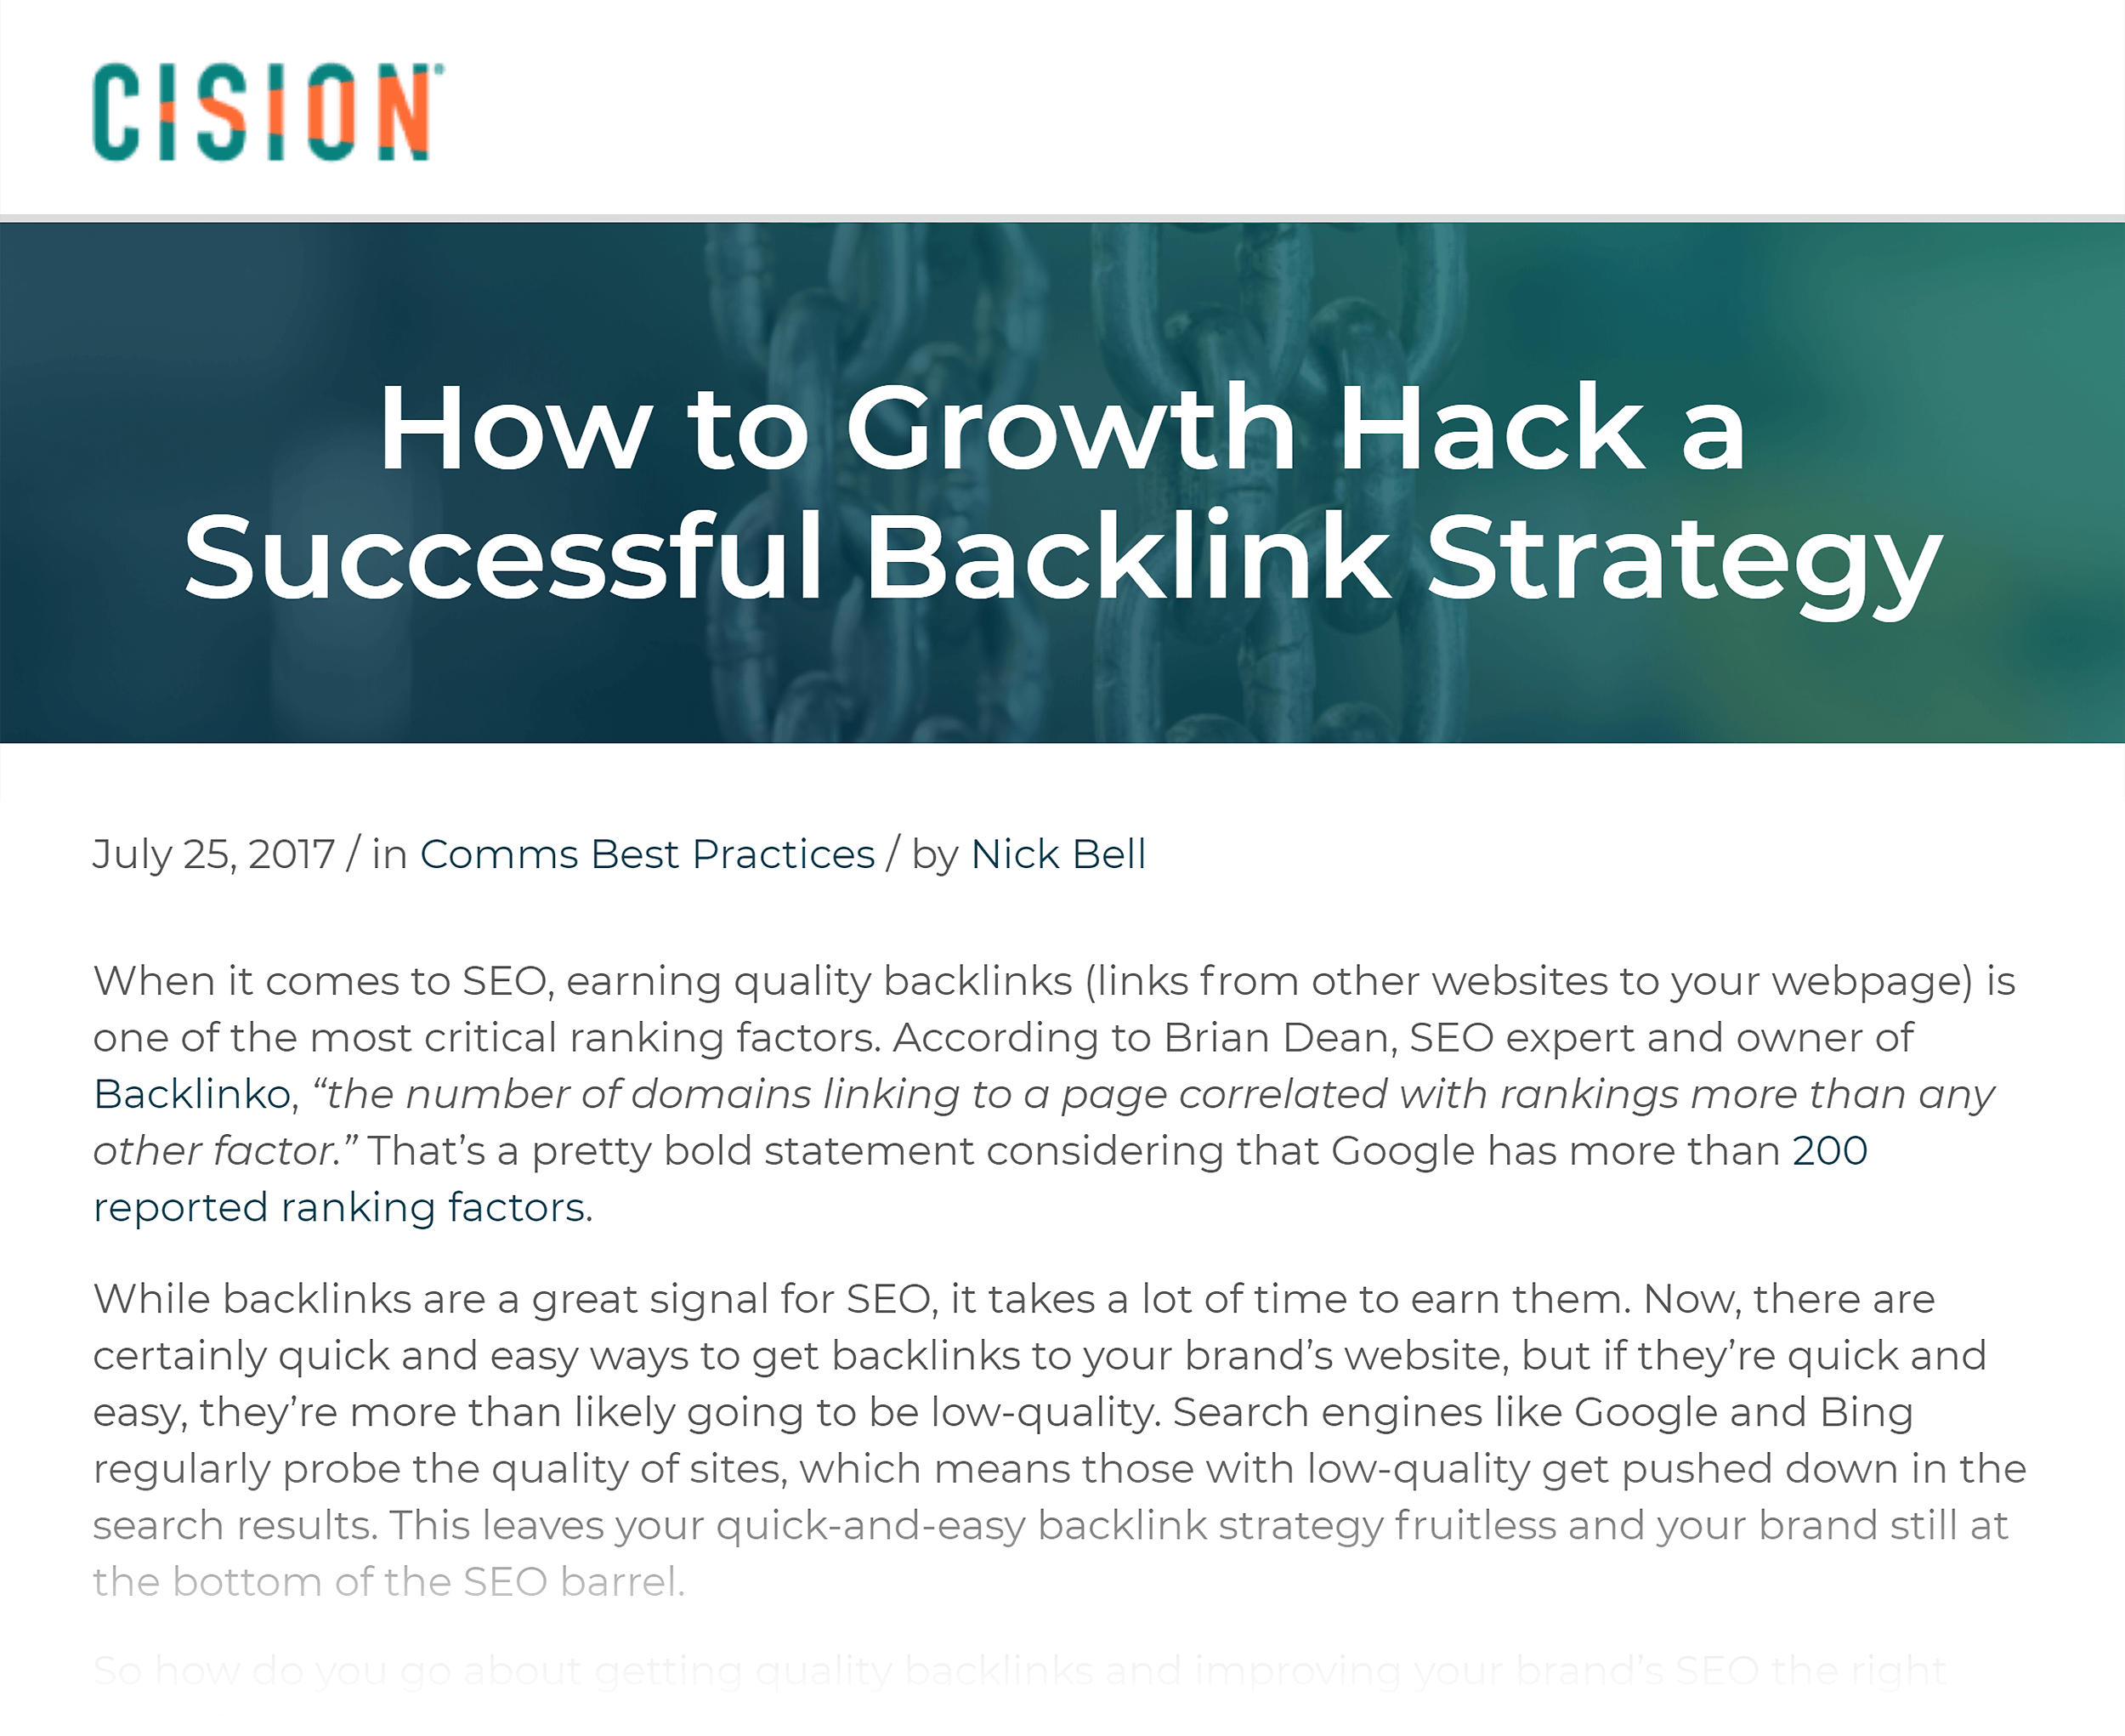 Cision growth hack article backlink